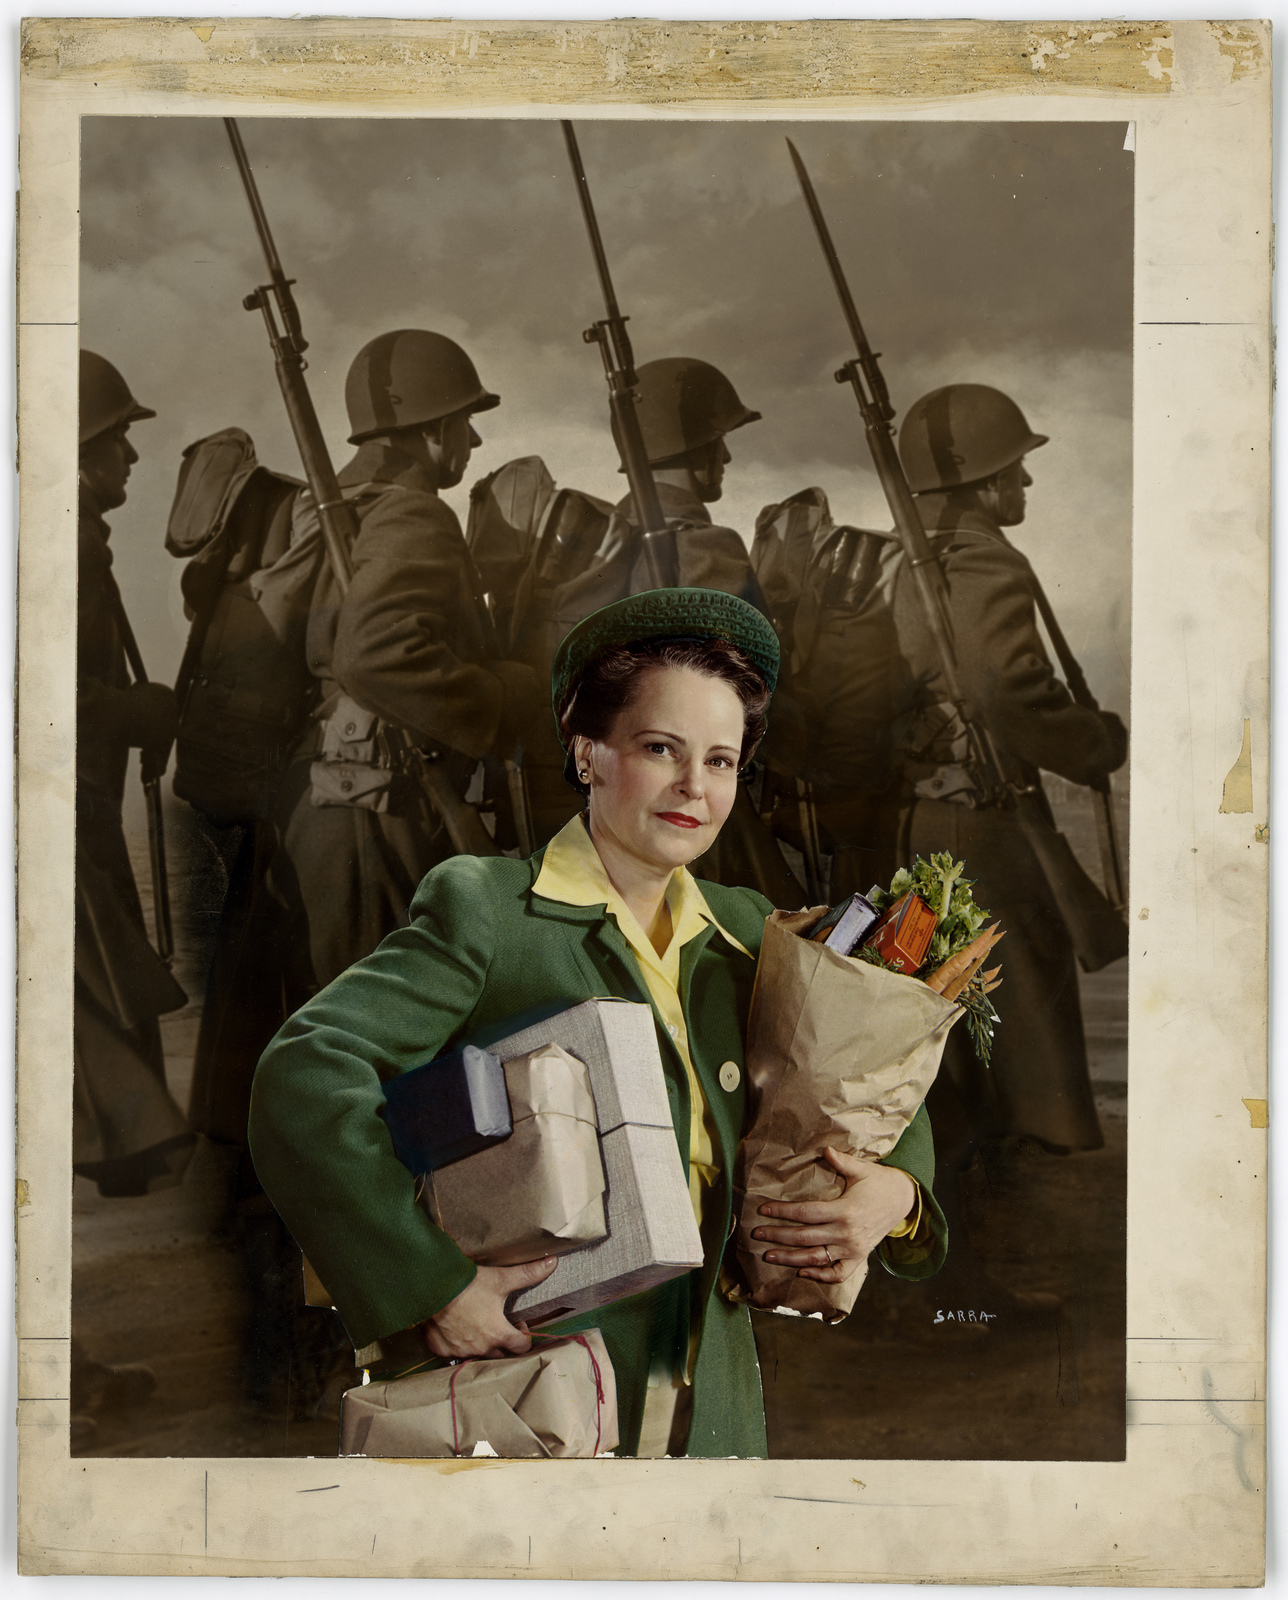 [Woman carrying groceries as soldiers marching with rifles on their shoulders in the background.] [Sarra]